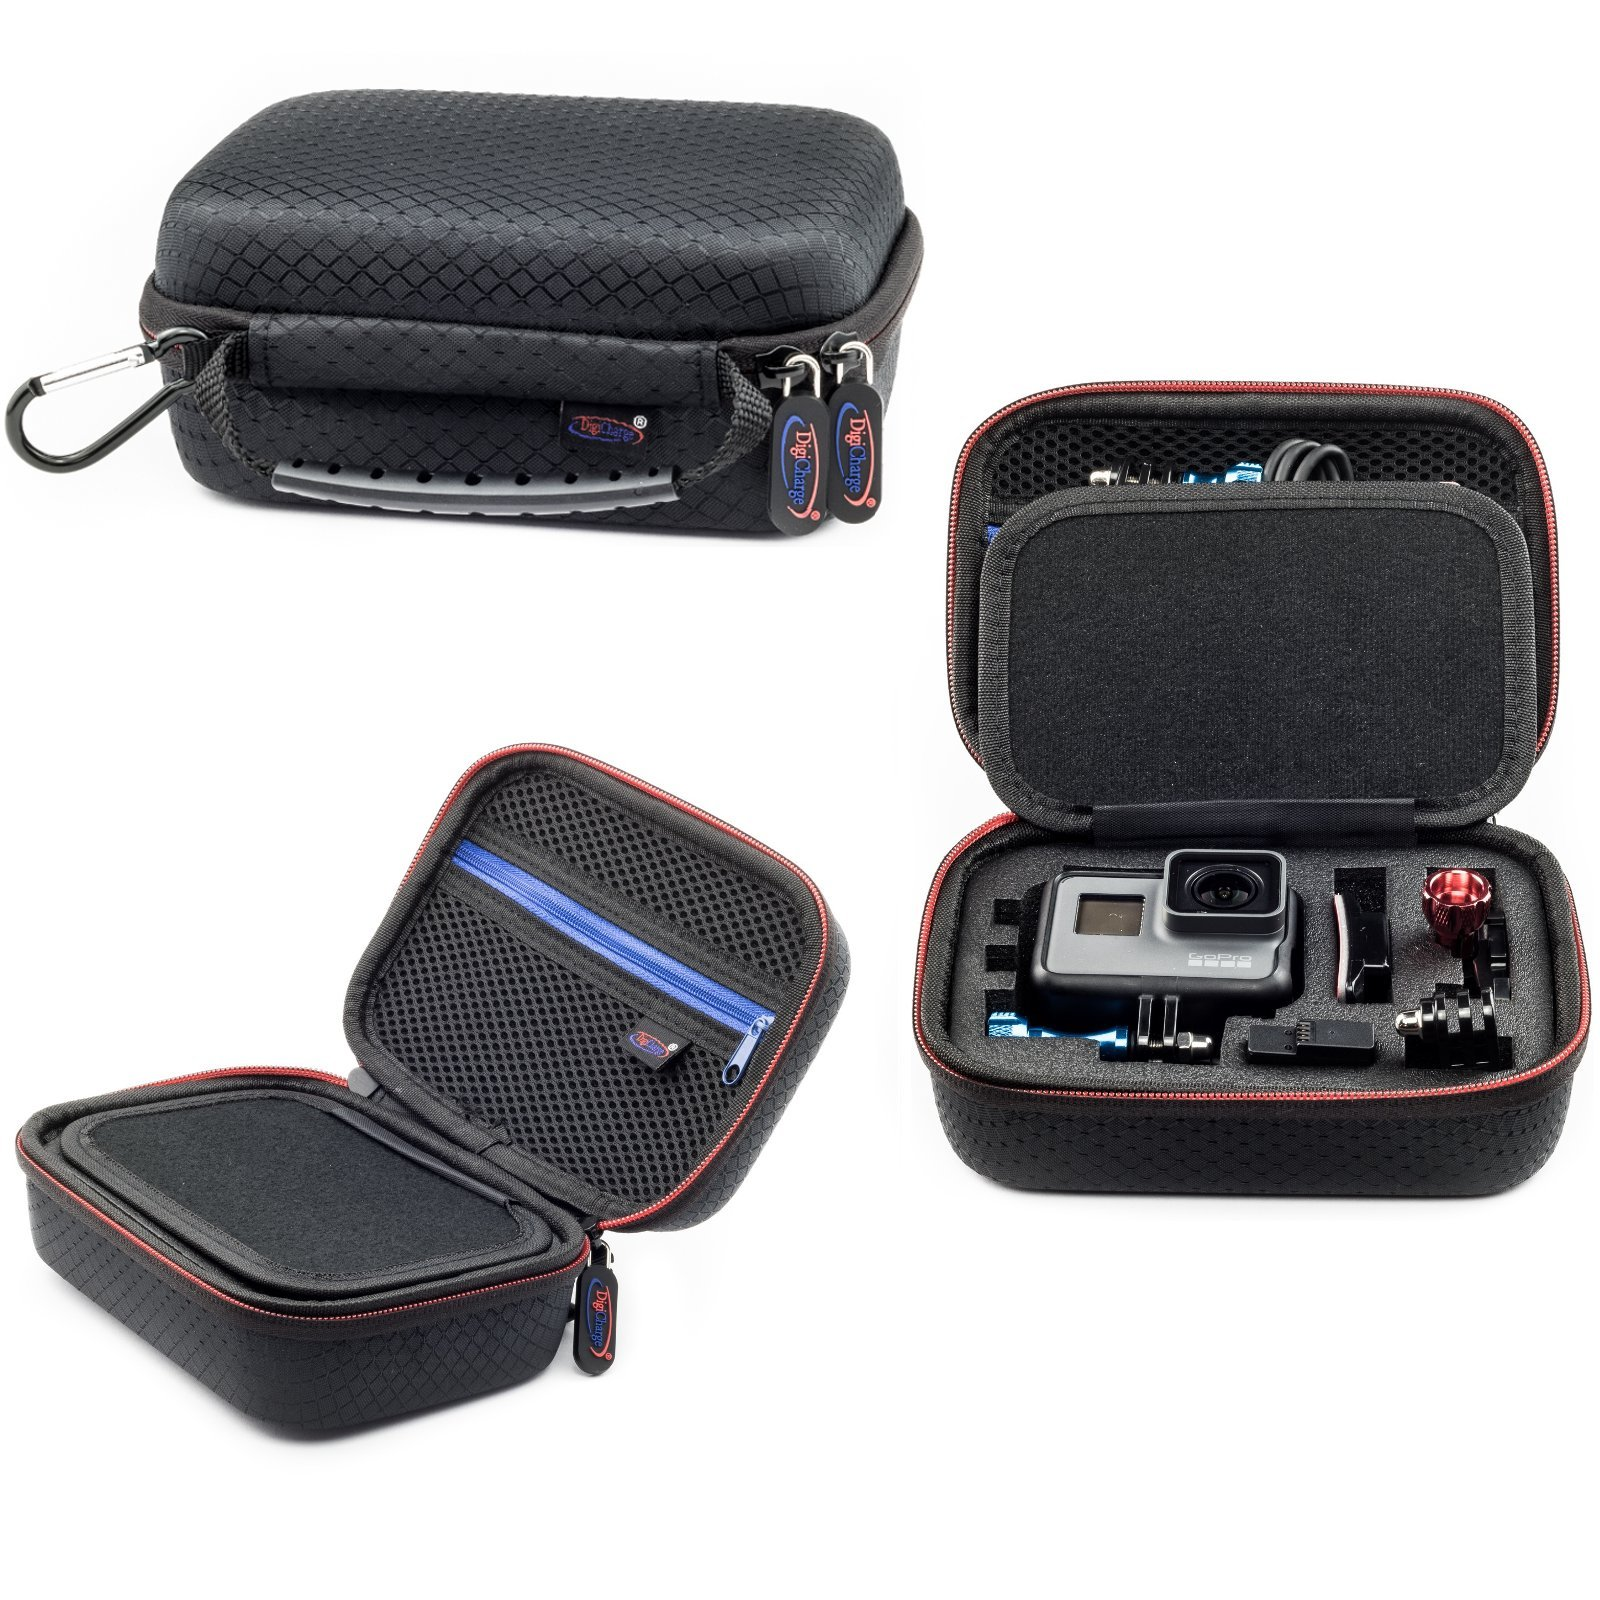 Extra Small Carrying Case For Action Camera GoPro HERO FUSION Akaso EK7000 Brave 5 4 Apeman EKEN H9R Fitfort Crosstour Campark ACT74 ACT76 Davola Dragon Touch Jeemak YI 4K Cam 6.5x4.5x3 Inch